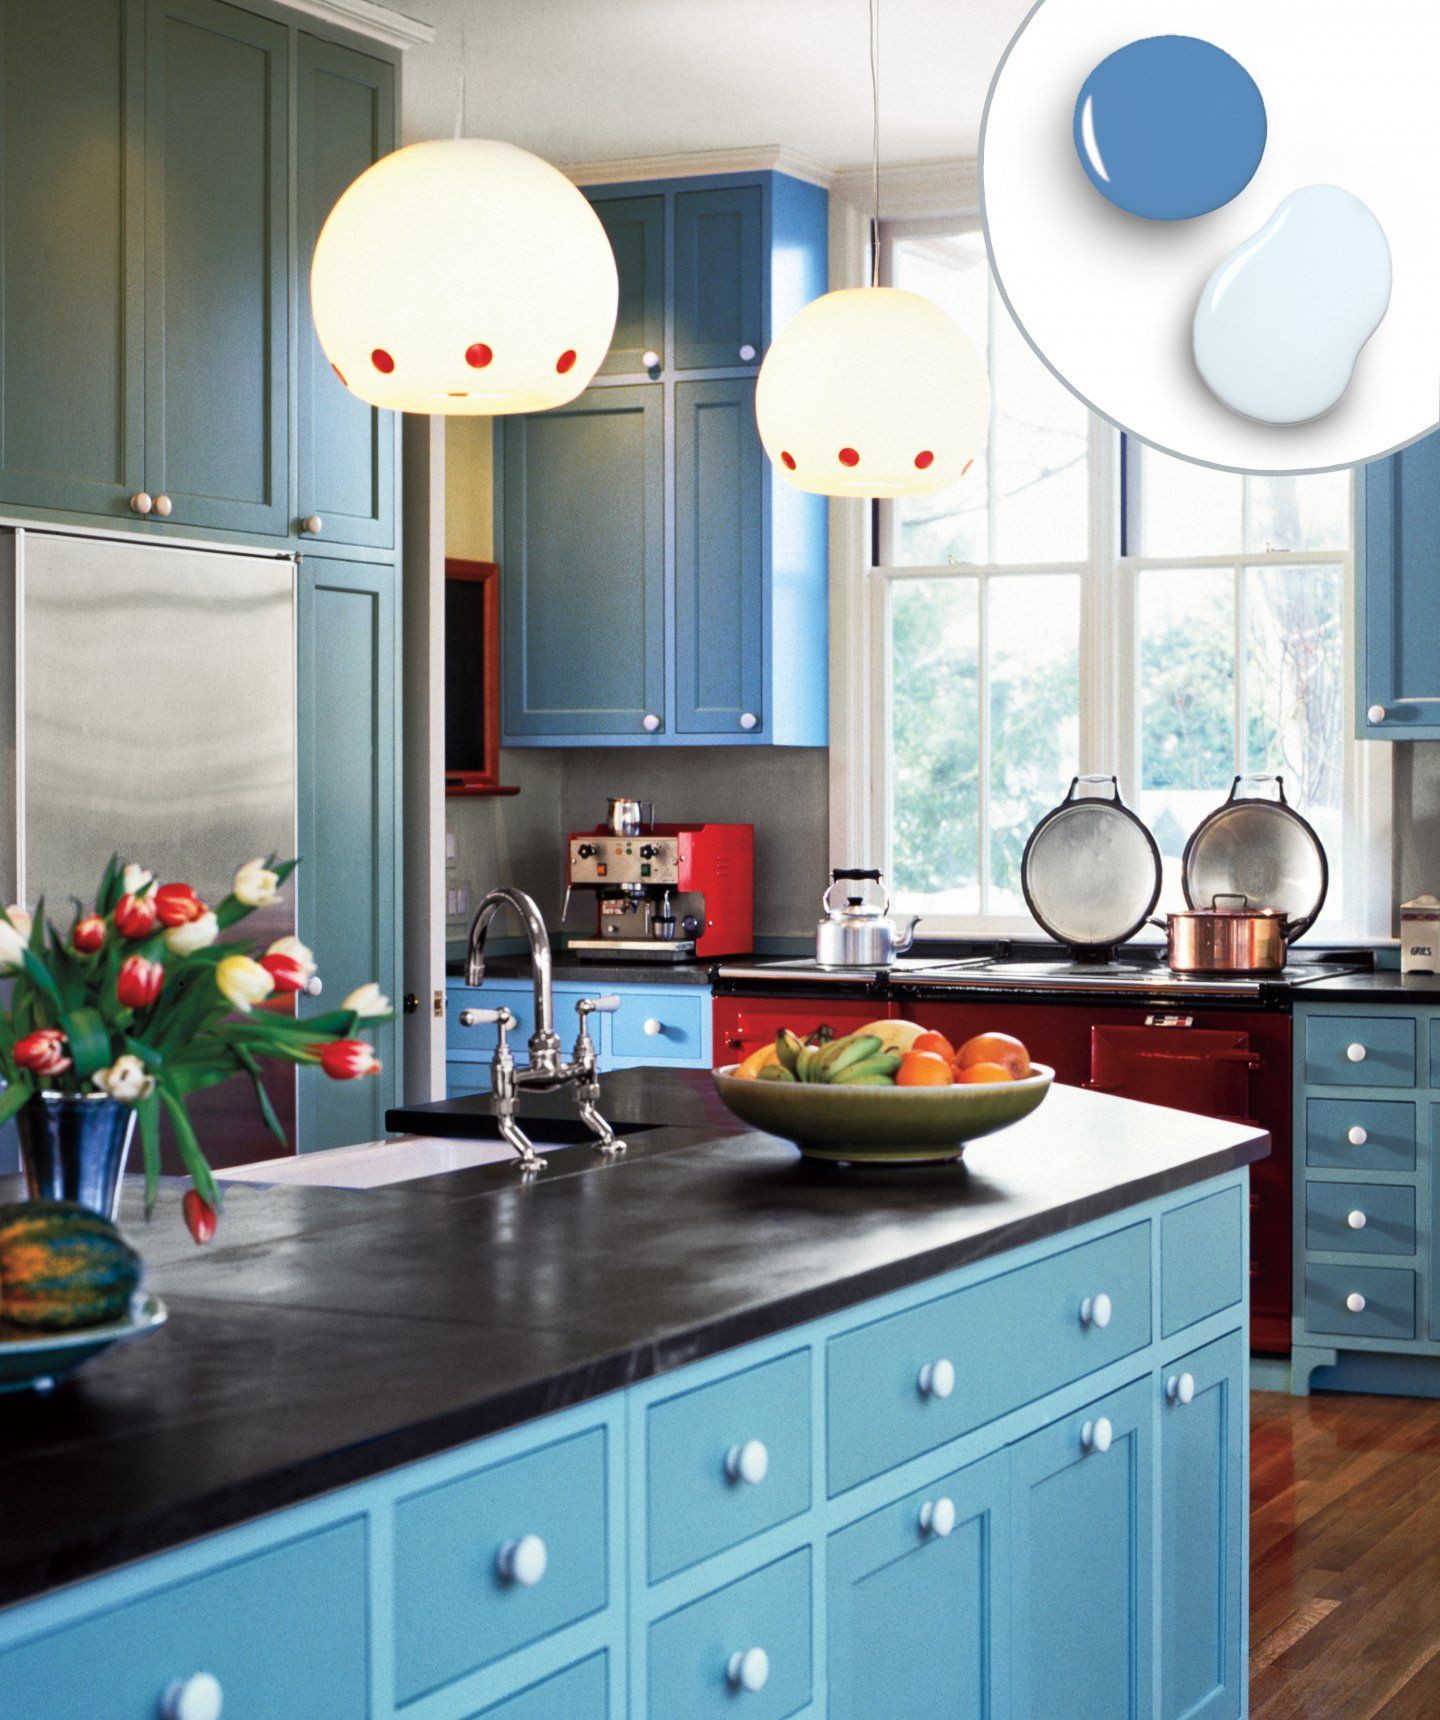 Spruce Up Your Kitchen With These Cabinet Door Styles: 12 Kitchen Cabinet Color Combos That Really Cook